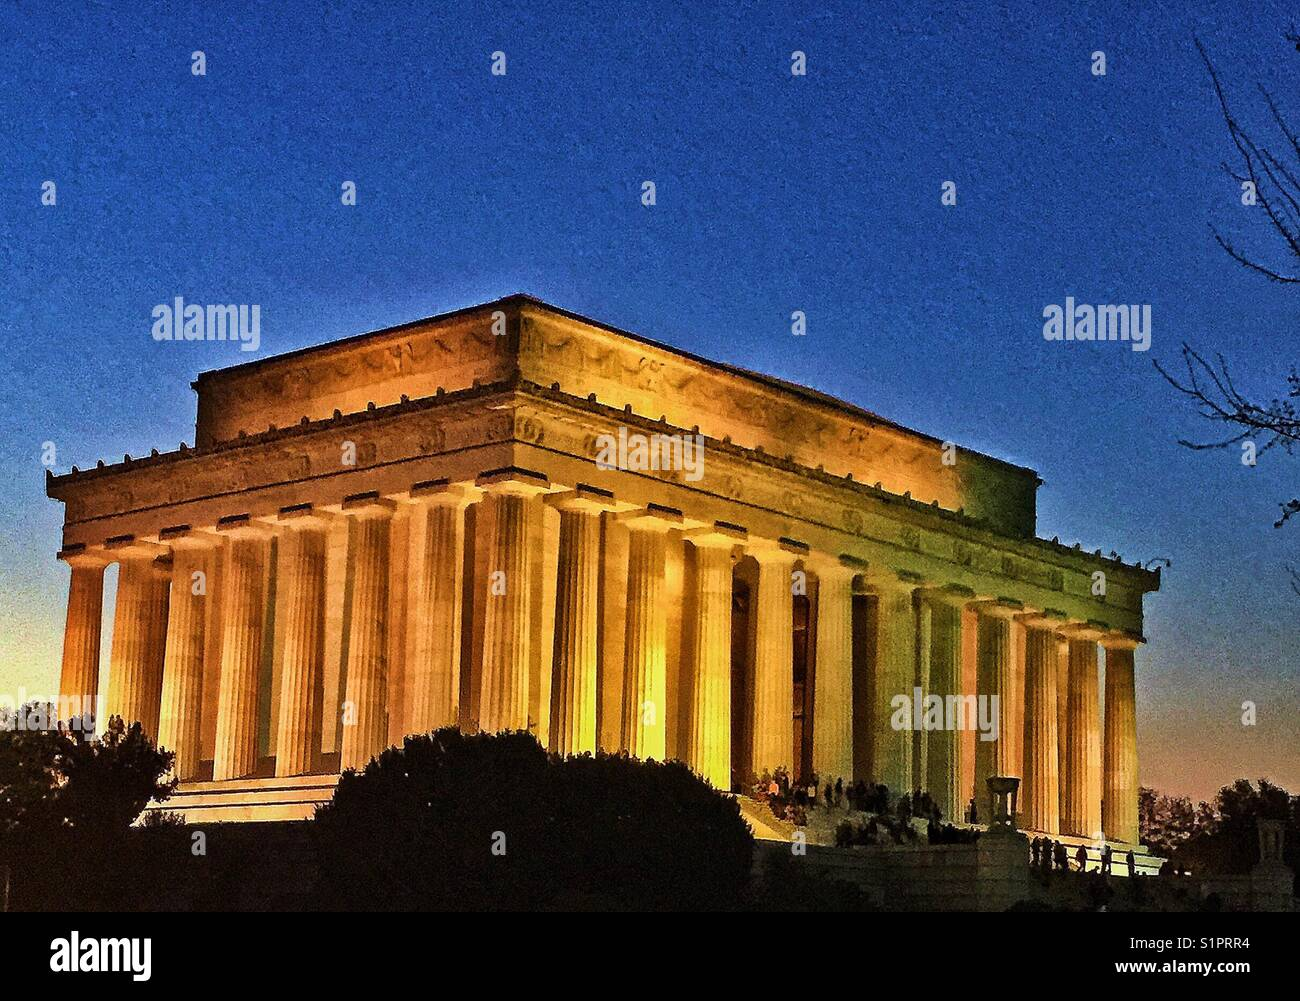 Lincoln Memorial in the evening. - Stock Image